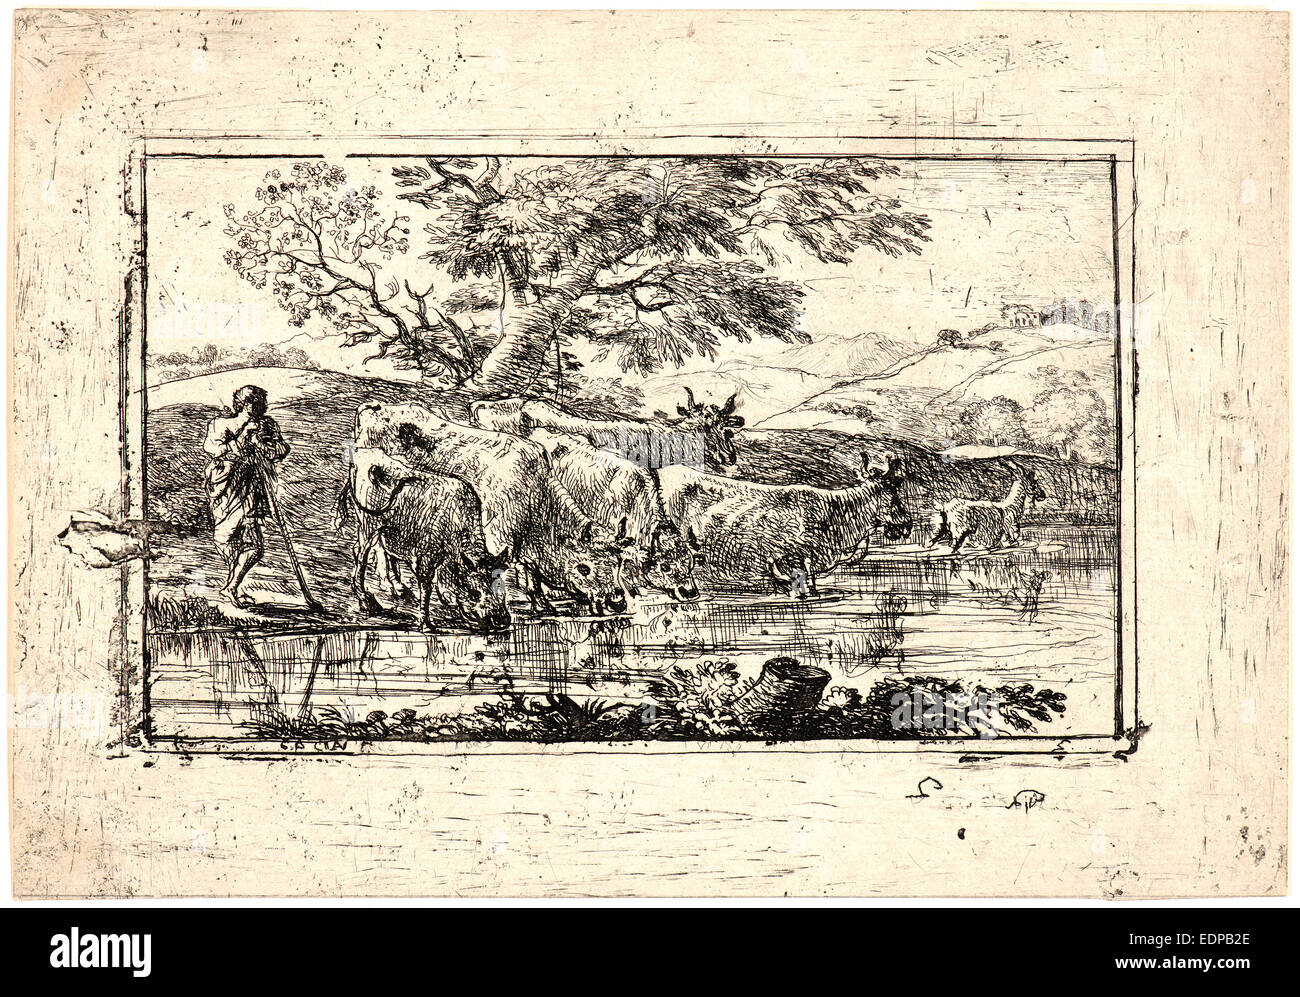 Claude Lorrain (French, 1604 - 1682). Cattle Drinking, 17th century. Etching - Stock Image